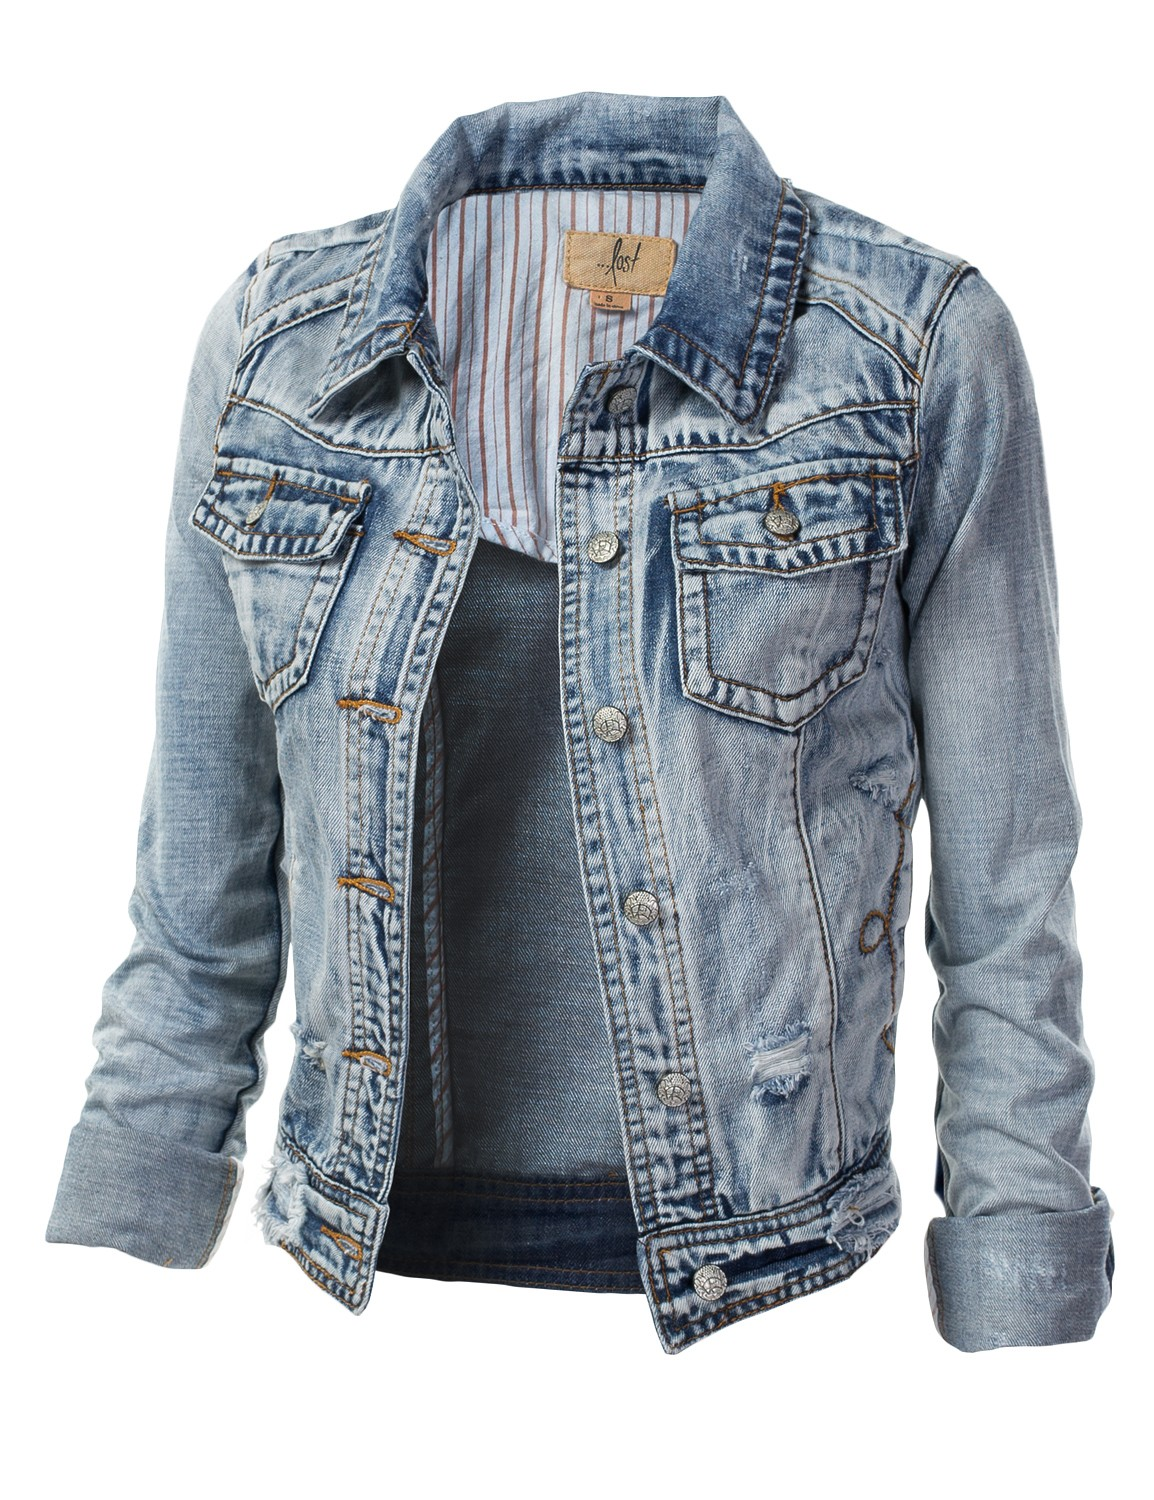 Shop for jean & denim jackets for women at getson.ga Browse women's jean & denim jackets & vests from top brands like Topshop, Levi's, Hudson & more. Free shipping & returns.